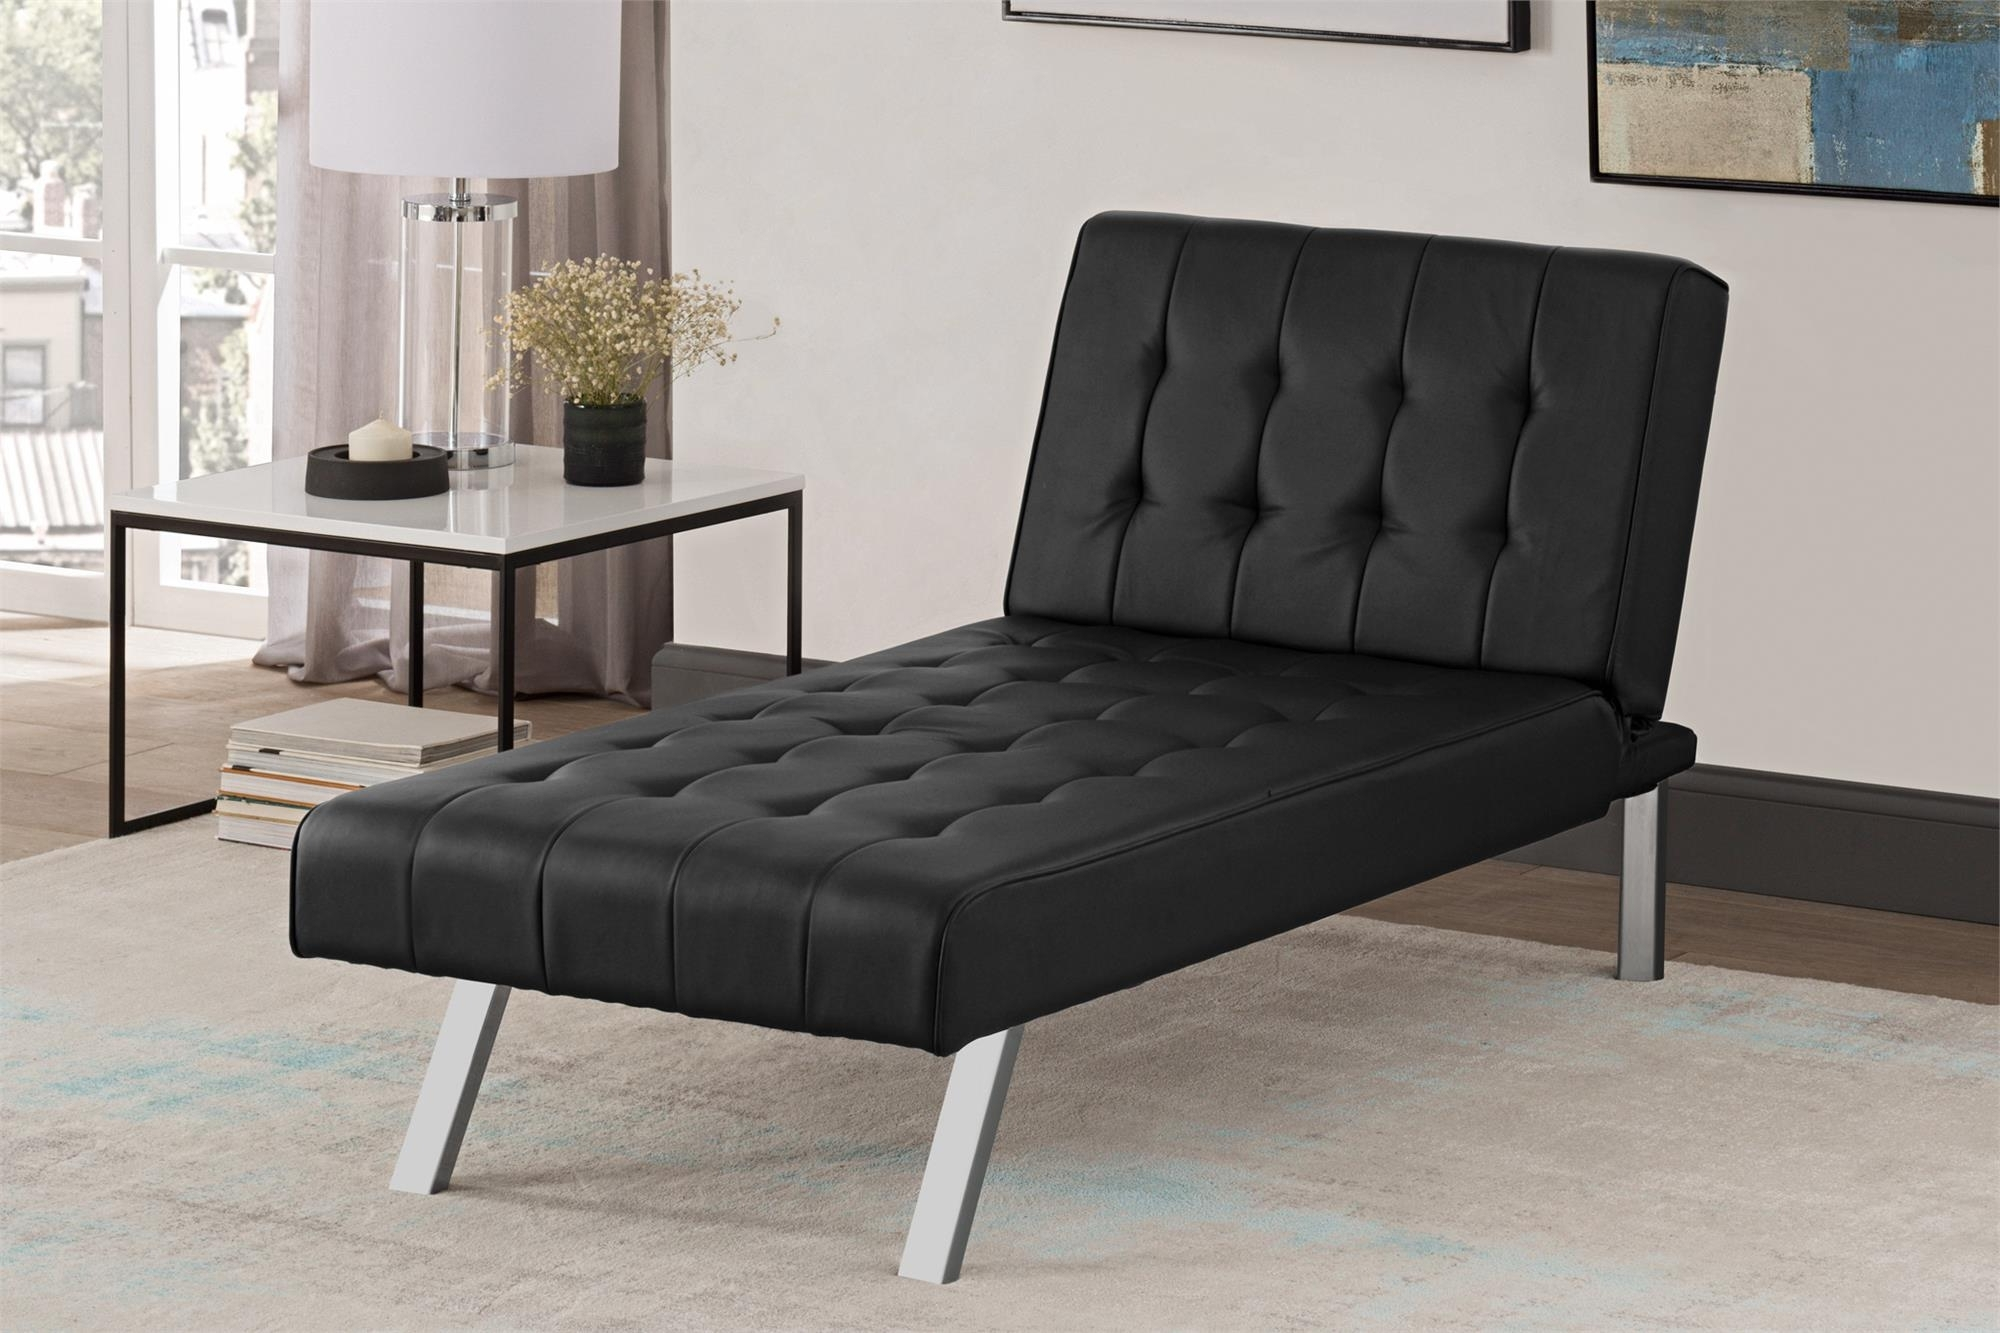 Dhp Emily Futon Chaise Lounger, Multiple Colors – Walmart With Well Known Emily Chaise Lounges (View 12 of 15)